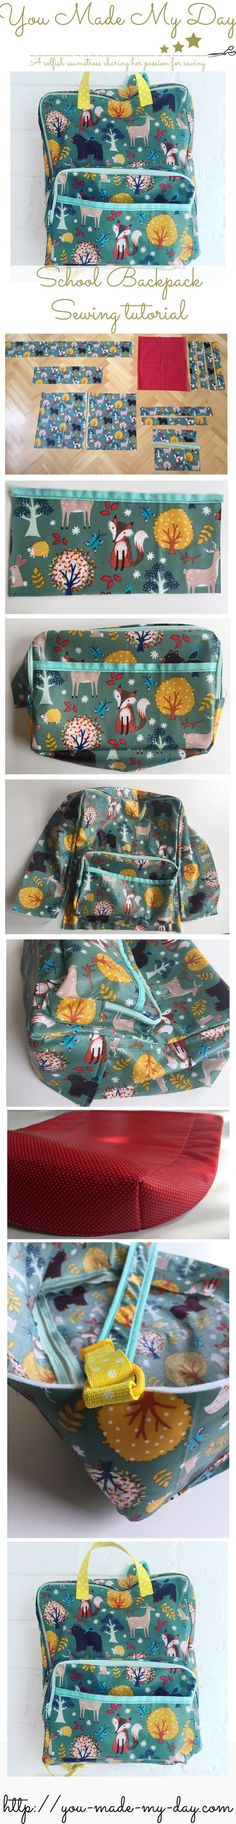 School backpack - Sewing tutorial and free pattern. For more sewing patterns, sewing tips and sewing tutorials visit http://you-made-my-day.com/